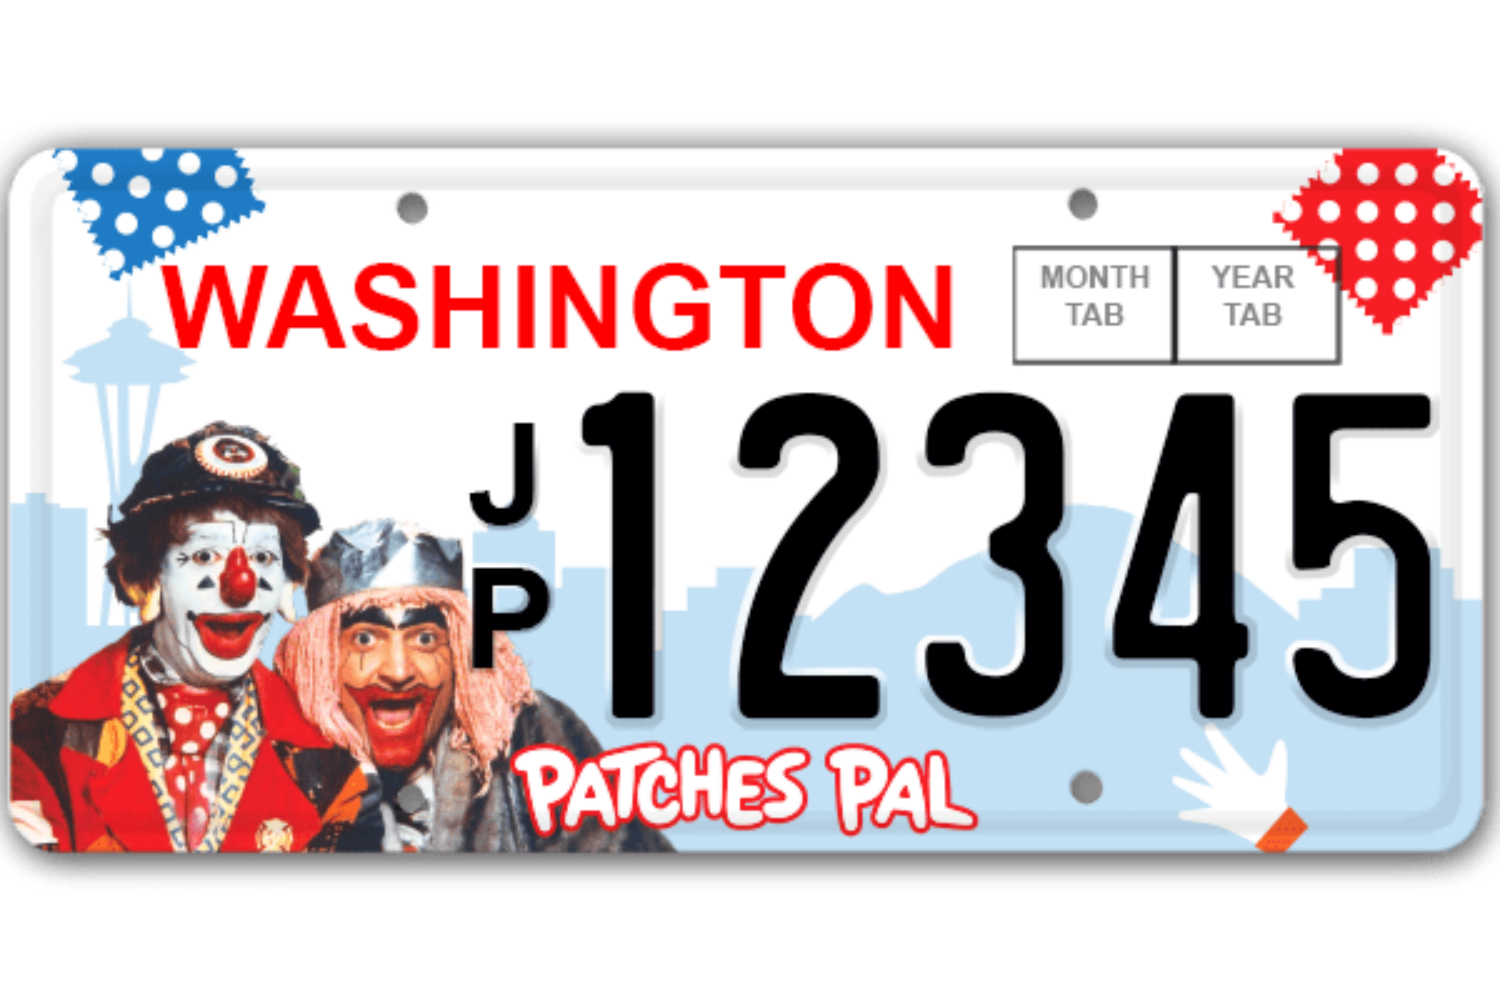 <p>The proposed J.P. and Gertrude license plate design (Credit: JPPatches.com)</p>